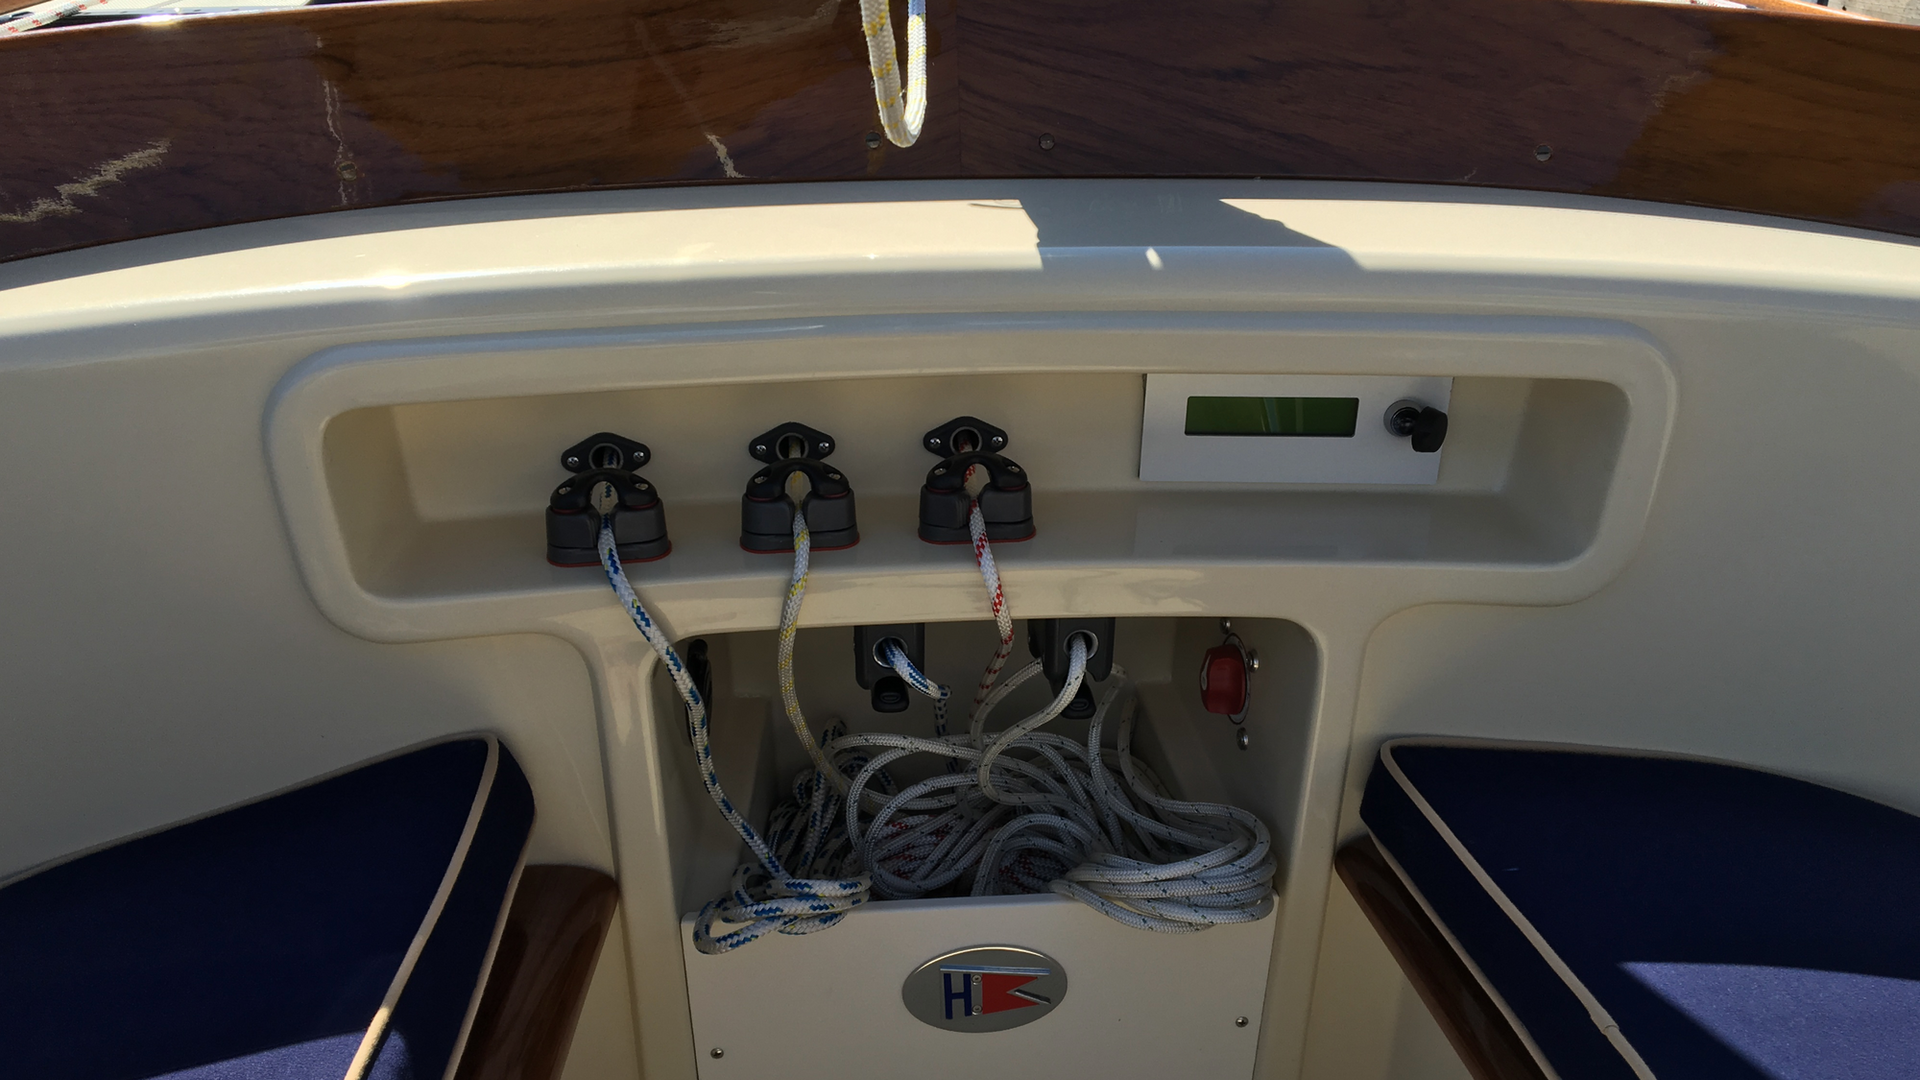 Forward console shows lower jib and main clutches - Above showing roller furler cleat (port), followed by optional asymmetrical package cleats, tack line and halyard respectively.